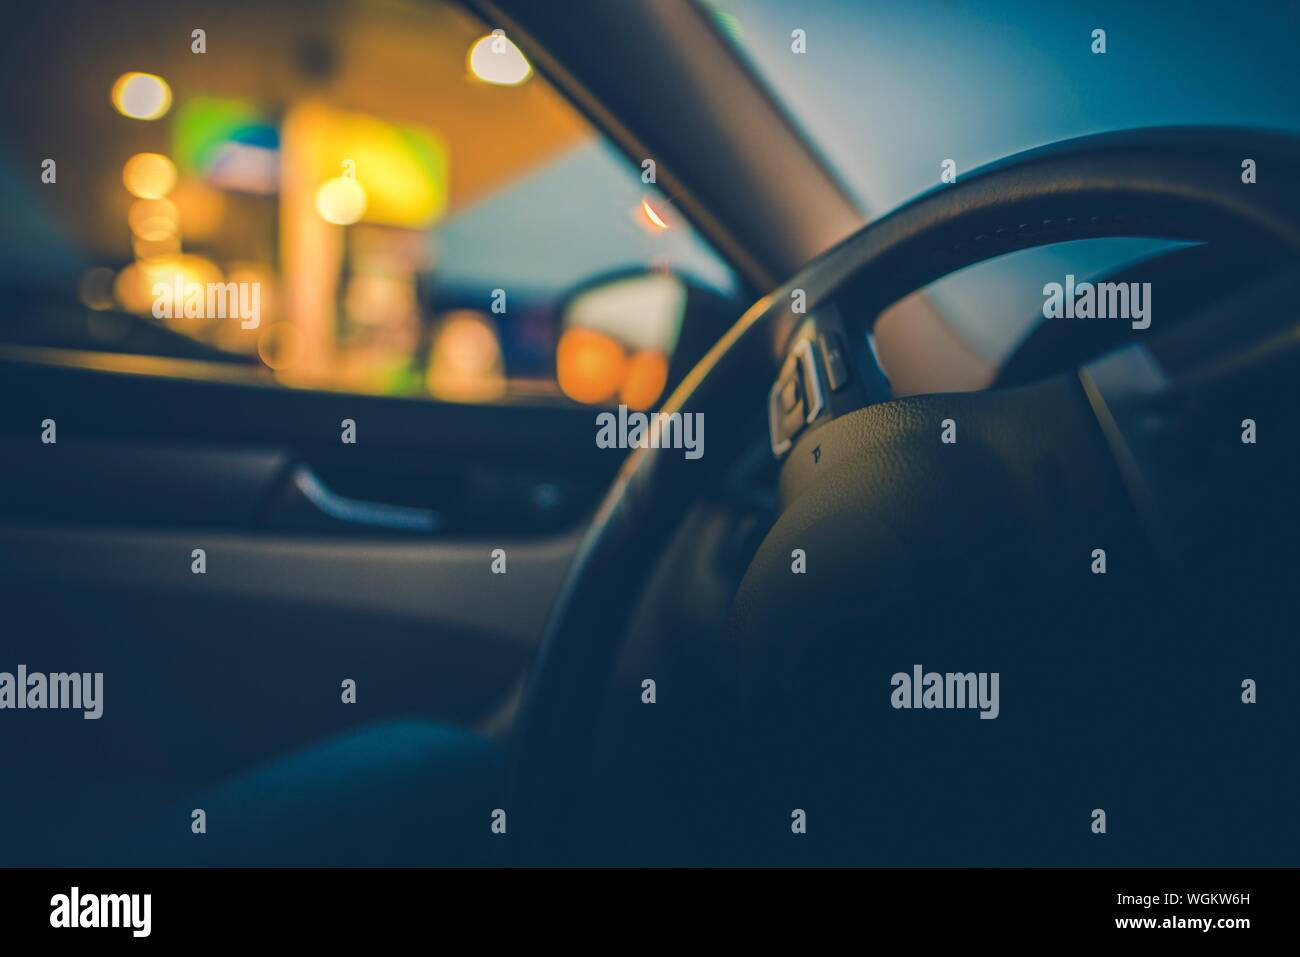 Close Up Of Car Steering Wheel At Night Stock Photo Alamy